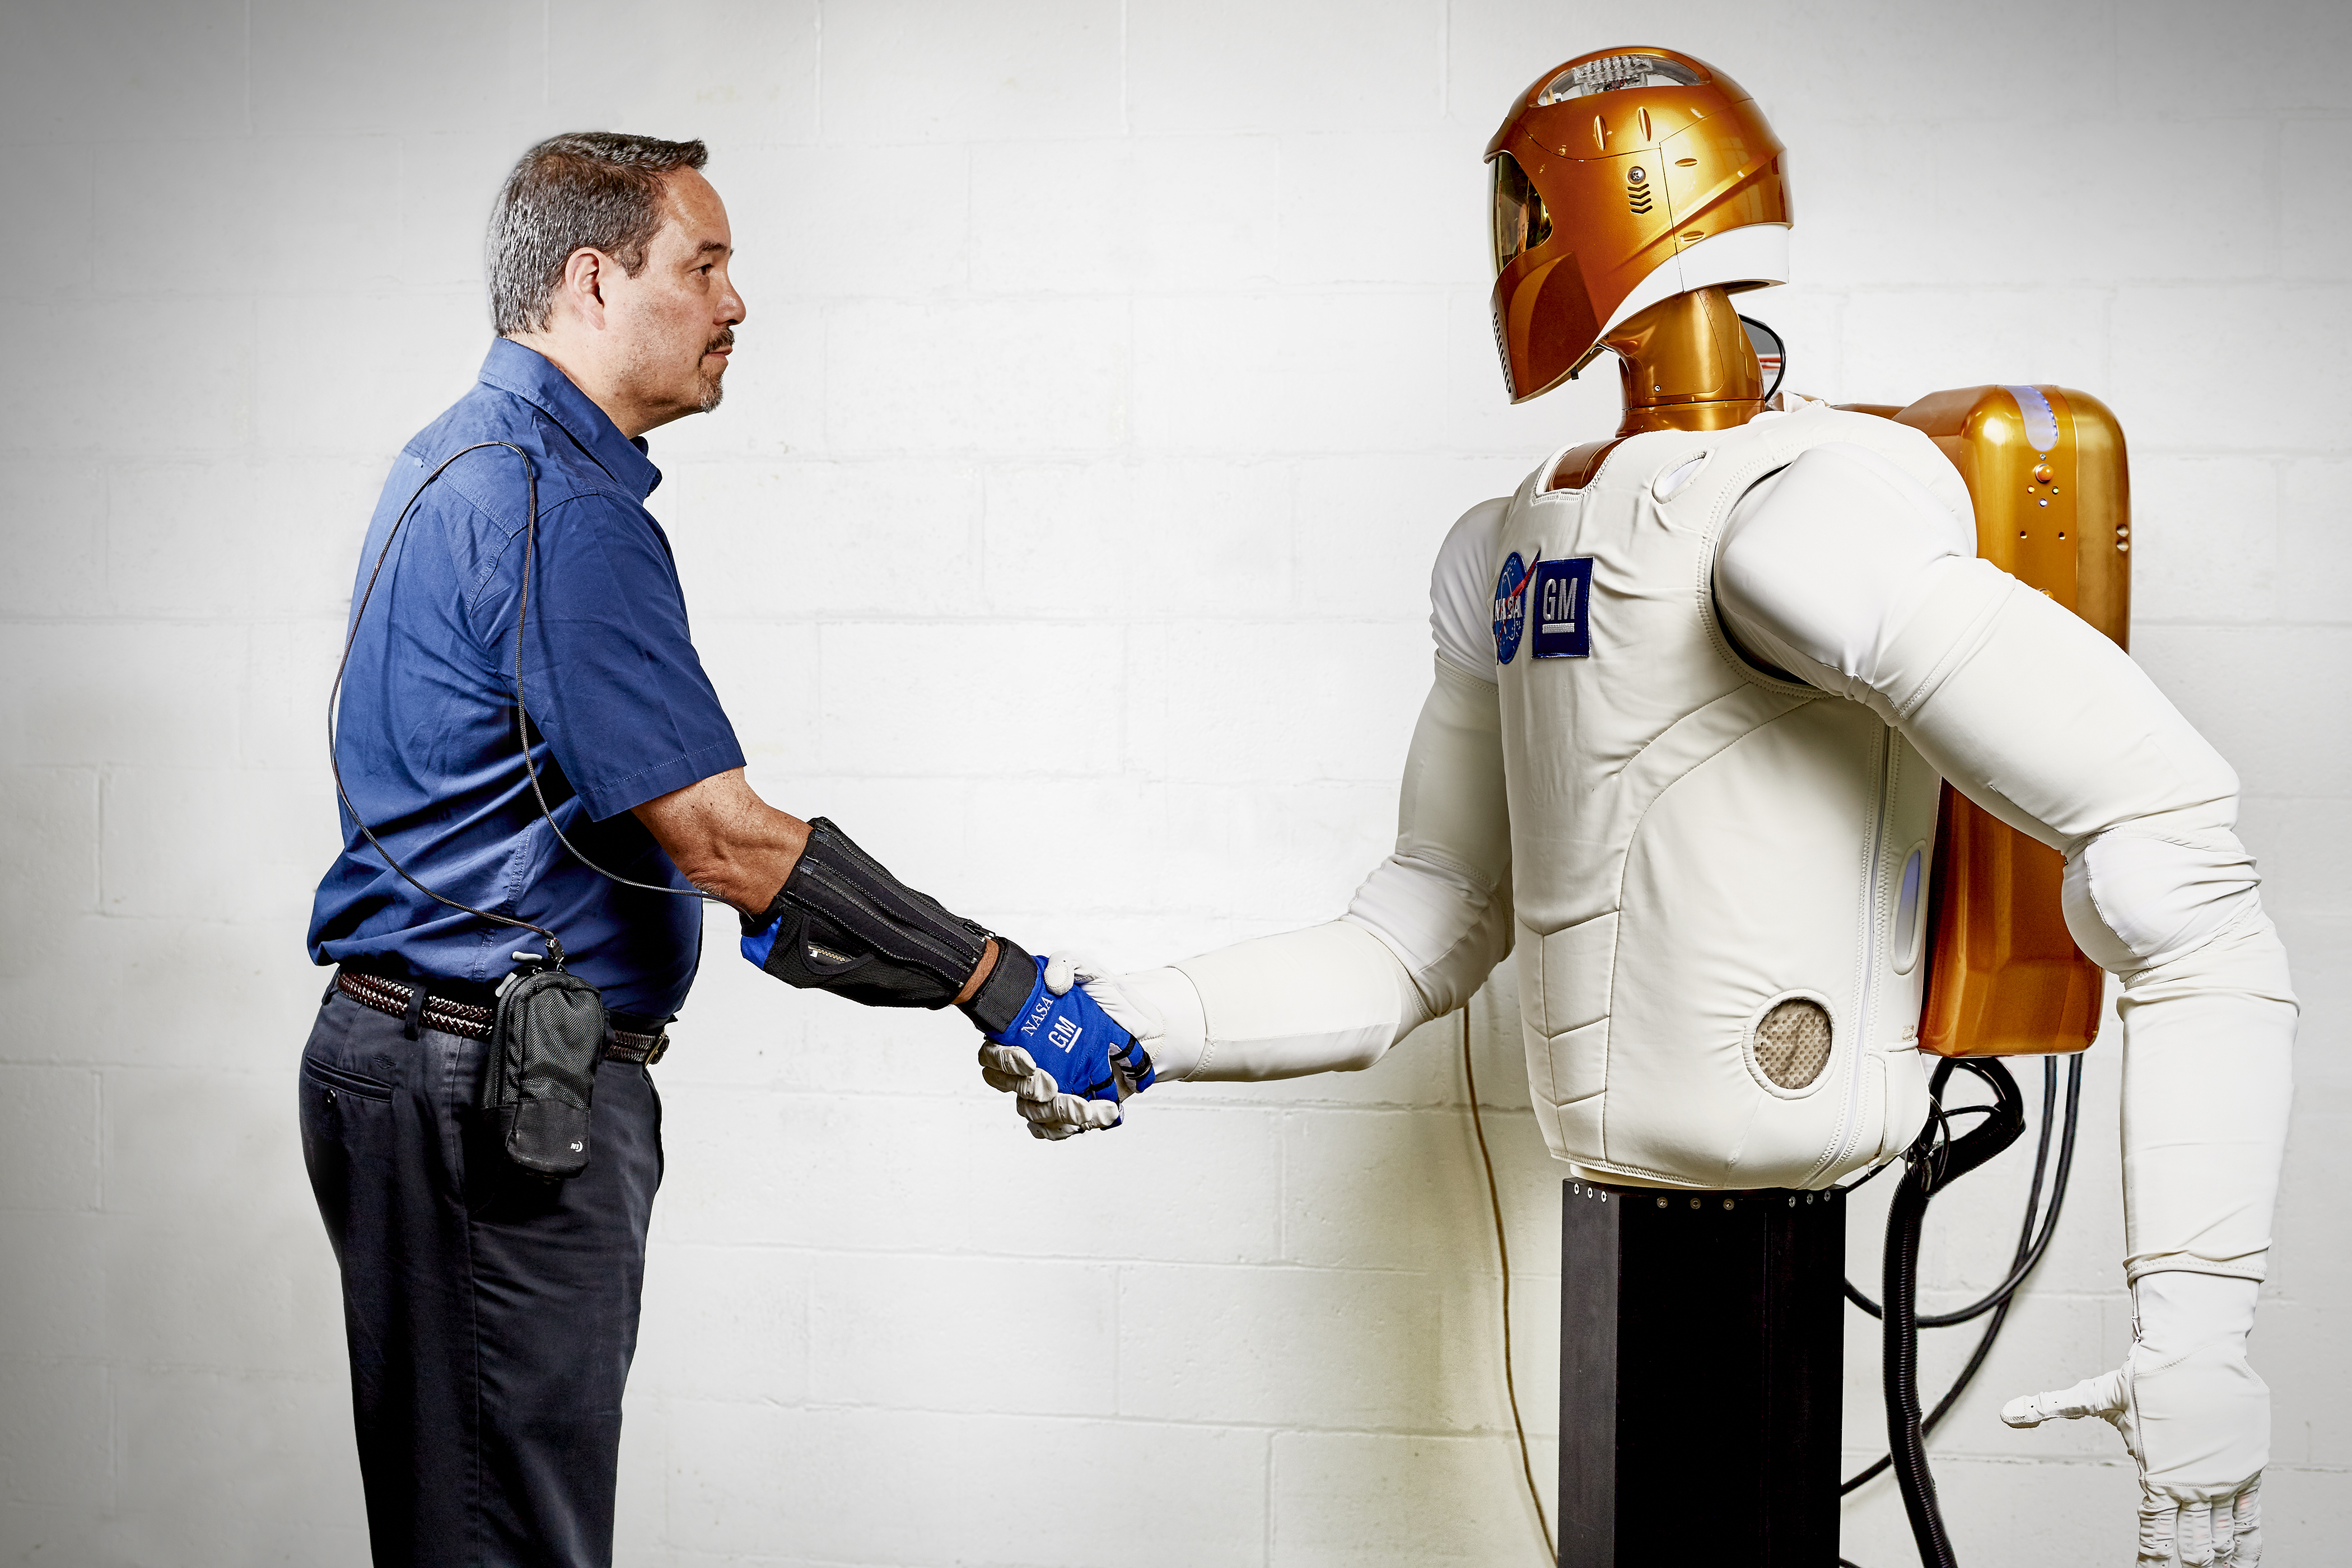 Marty Linn, General Motors manager of advanced technology and principal engineer for robotics, shakes hands with Robonaut 2 (R2), a humanoid robot developed by GM and NASA during a nine-year collaboration that also led to development of the RoboGlove, an exo-muscular device that enhances strength and grip through leading-edge sensors, actuators and tendons that are comparable to the nerves, muscles and tendons in a human hand. GM is licensing the RoboGlove intellectual property to Bioservo Technologies AB, a Swedish medical technologies company that will combine RoboGlove with its owner patented SEM glove technology.